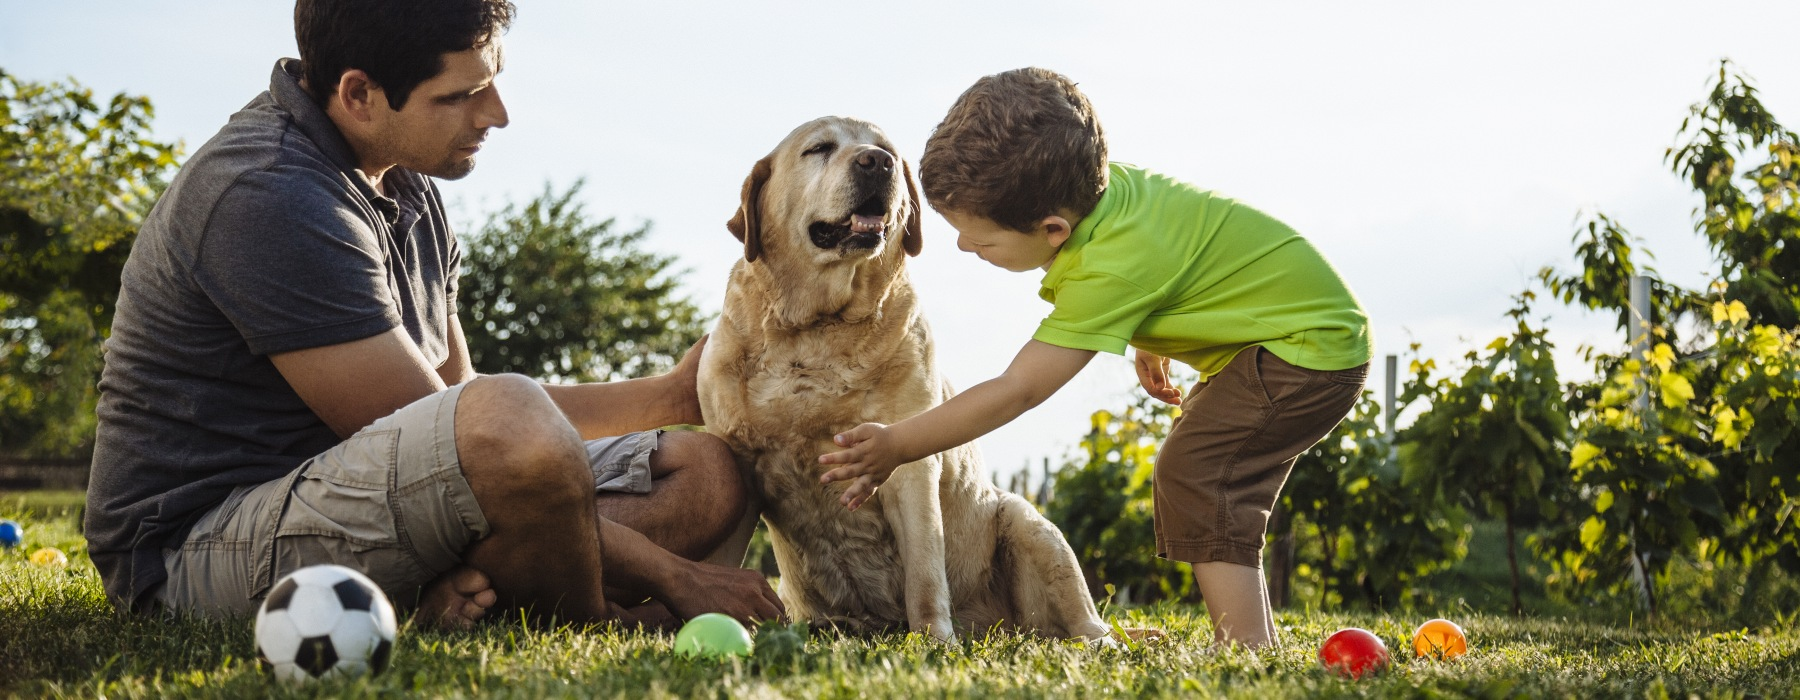 man and child playing with dog